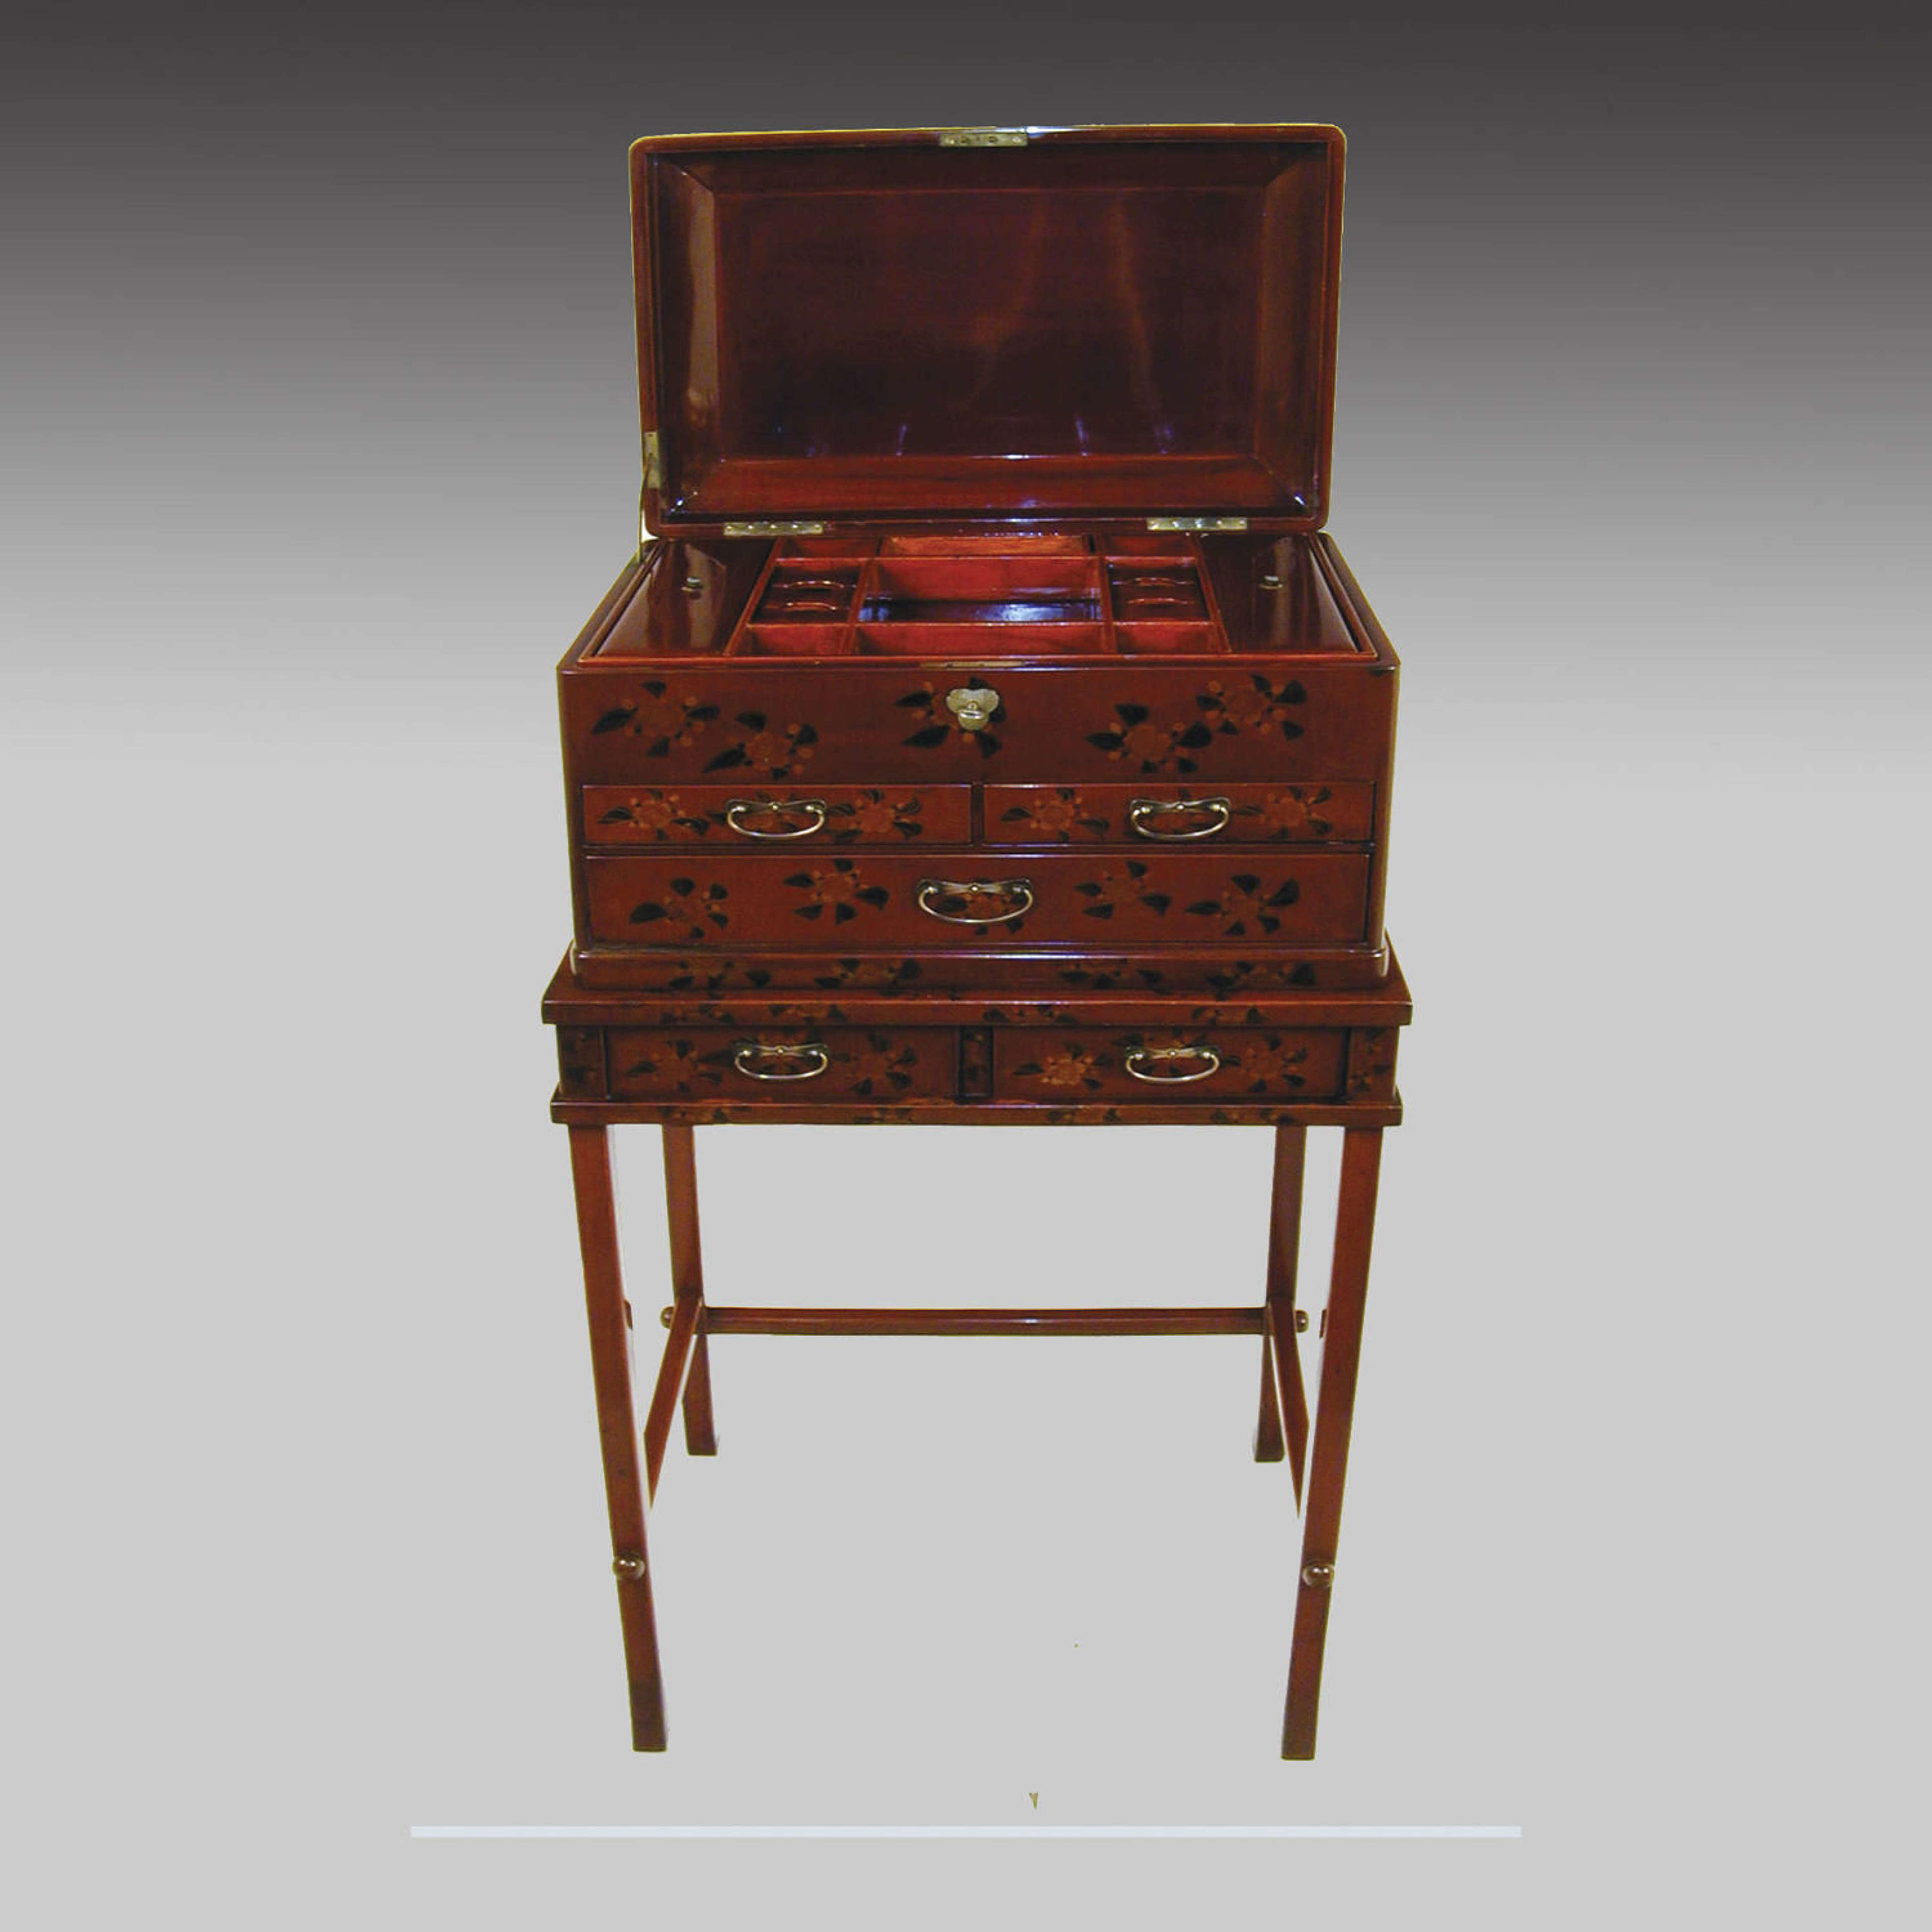 Anglo-Japanese red lacquer box on stand